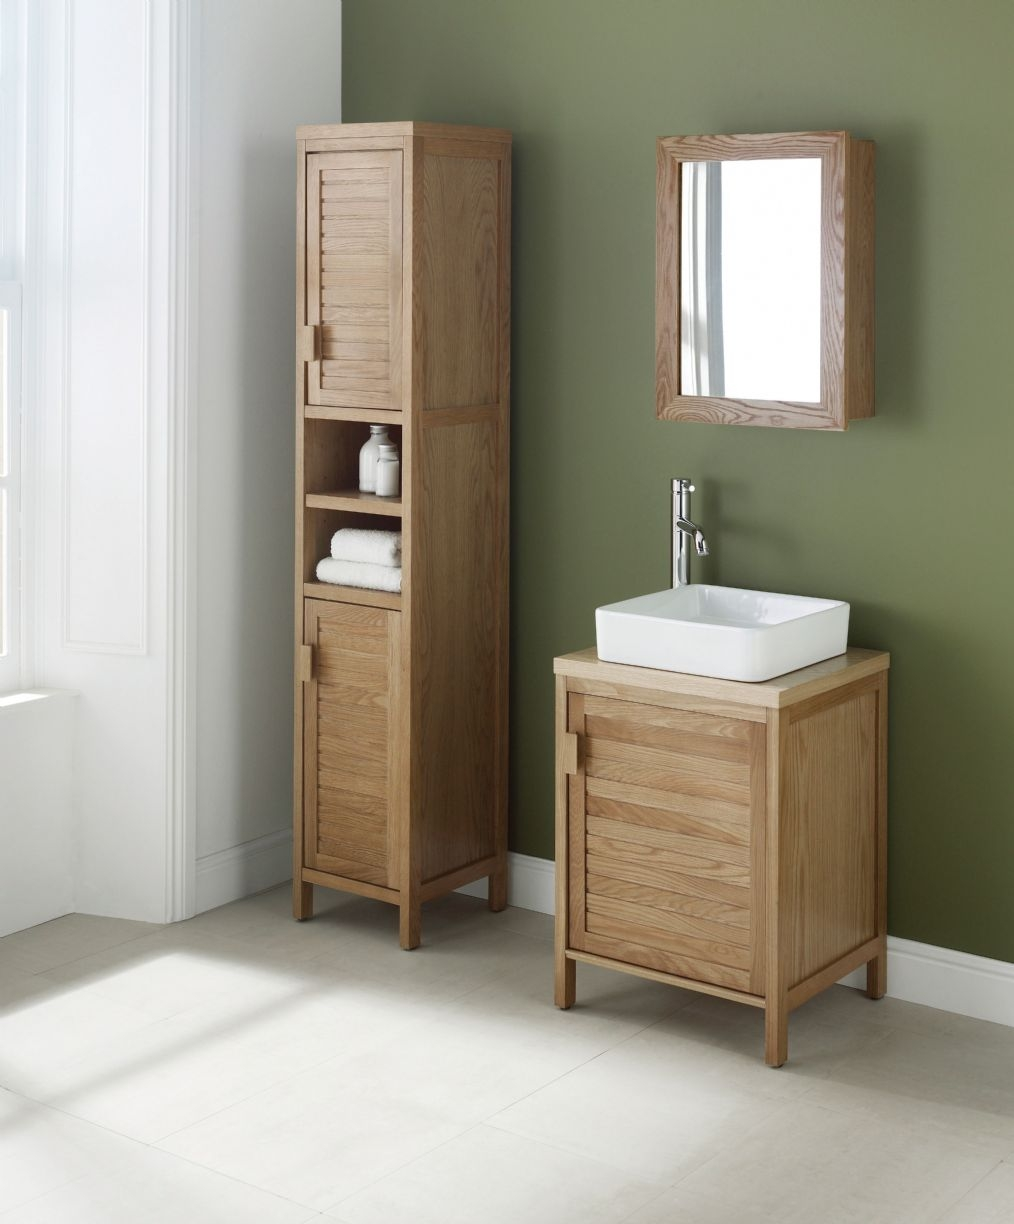 Permalink to Free Standing Wooden Bathroom Furniture